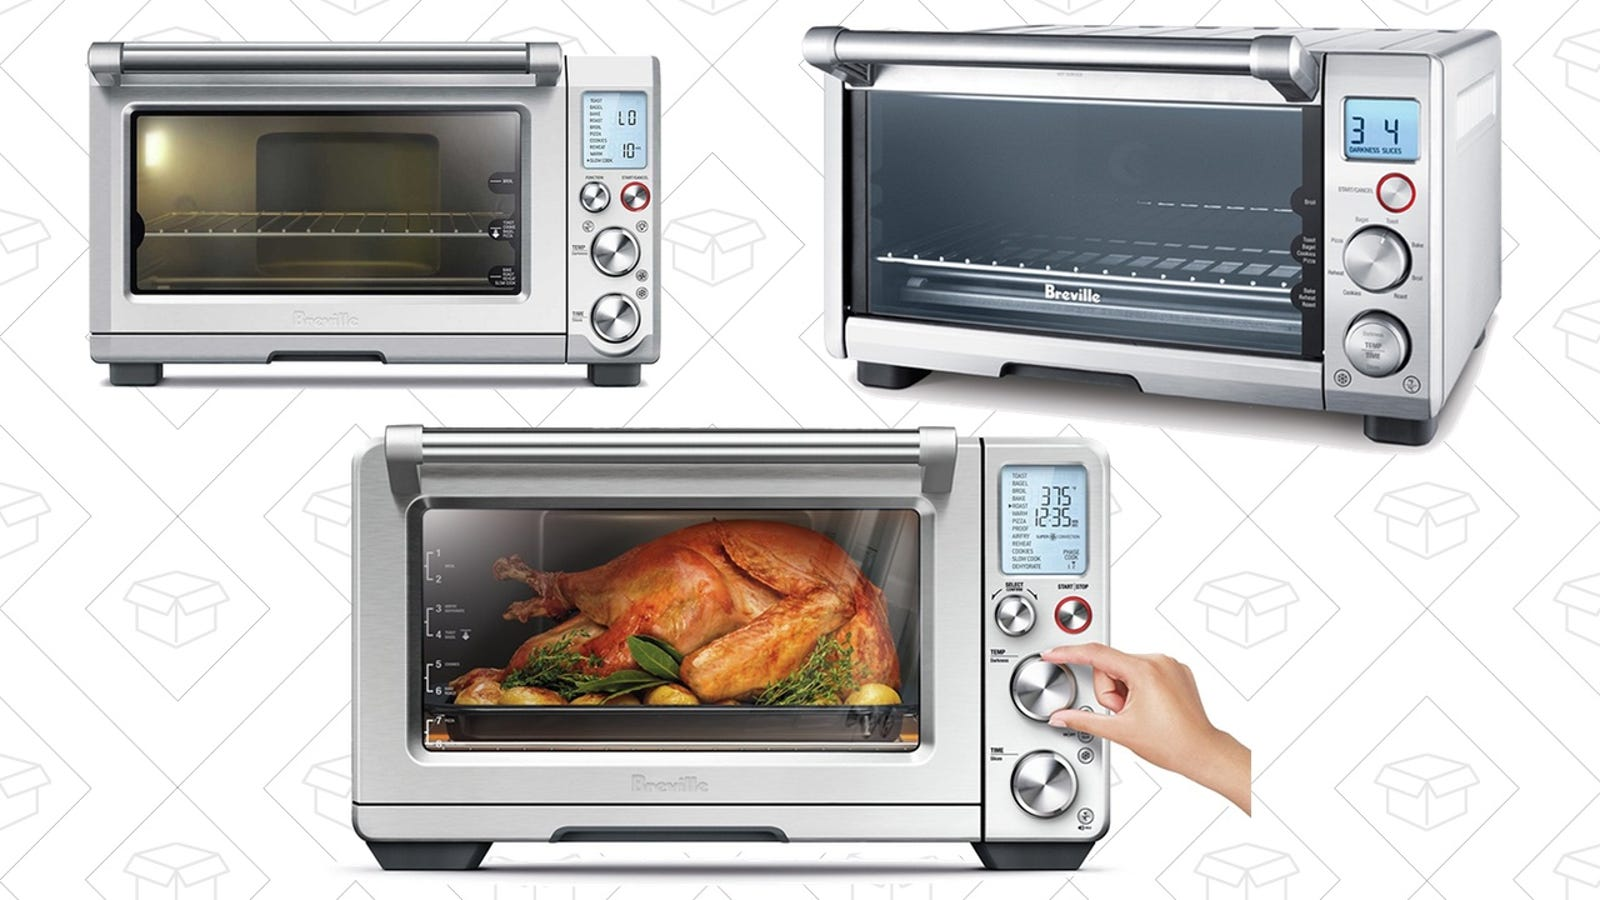 Those Breville Smart Oven Deals Keep Getting Better Now